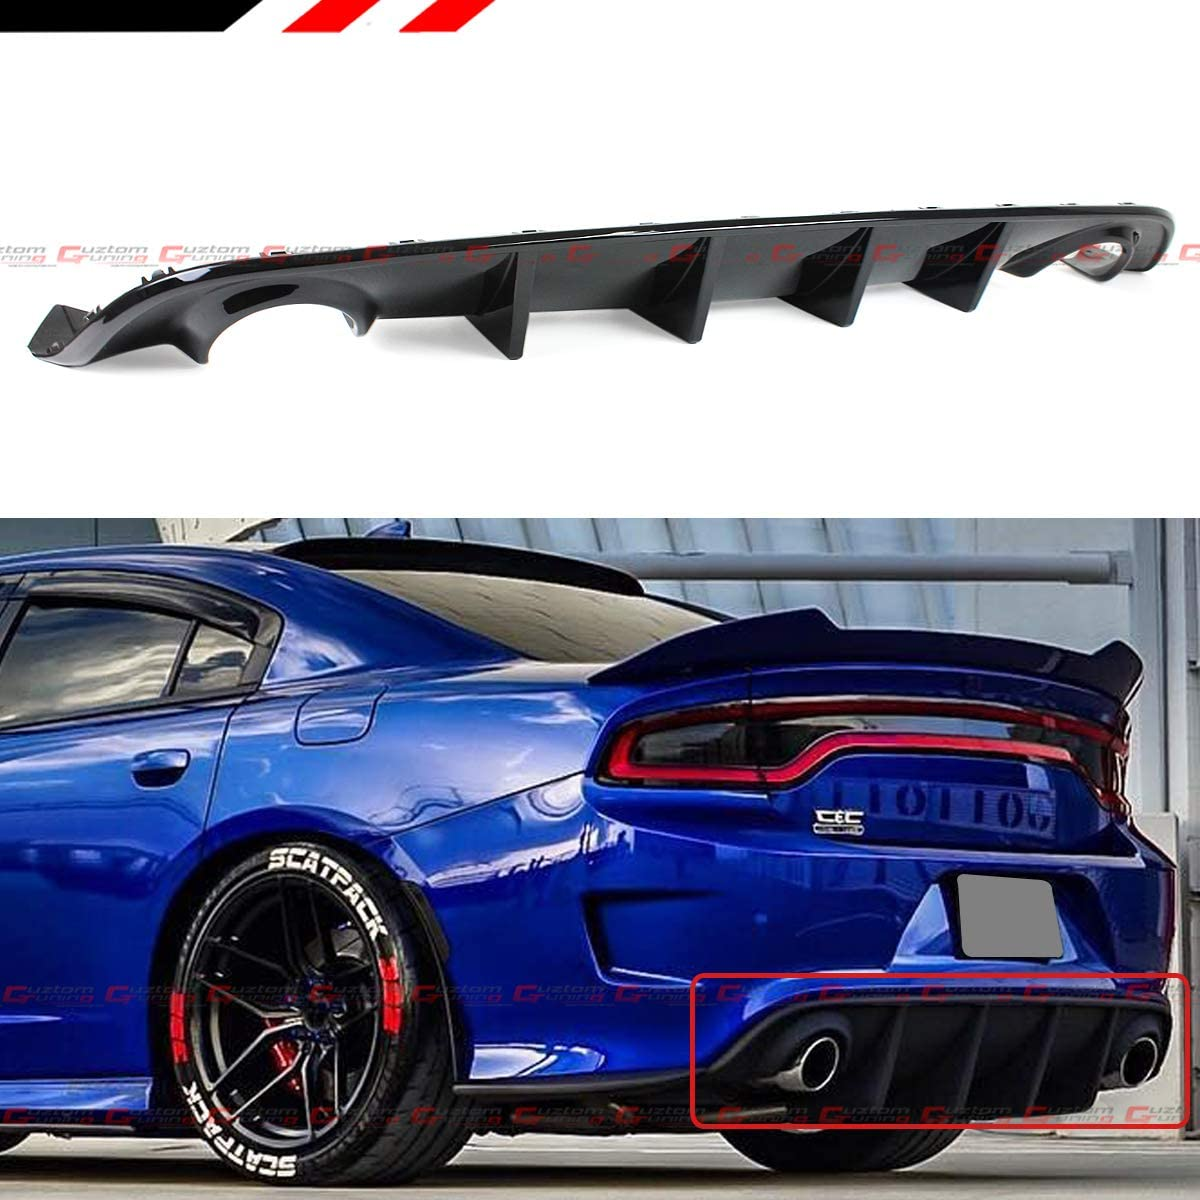 For 2015-2020 Dodge Charger SRT Hellcat Scat Pack Shark Fin Rear Bumper Diffuser Painted Glossy Black Finish